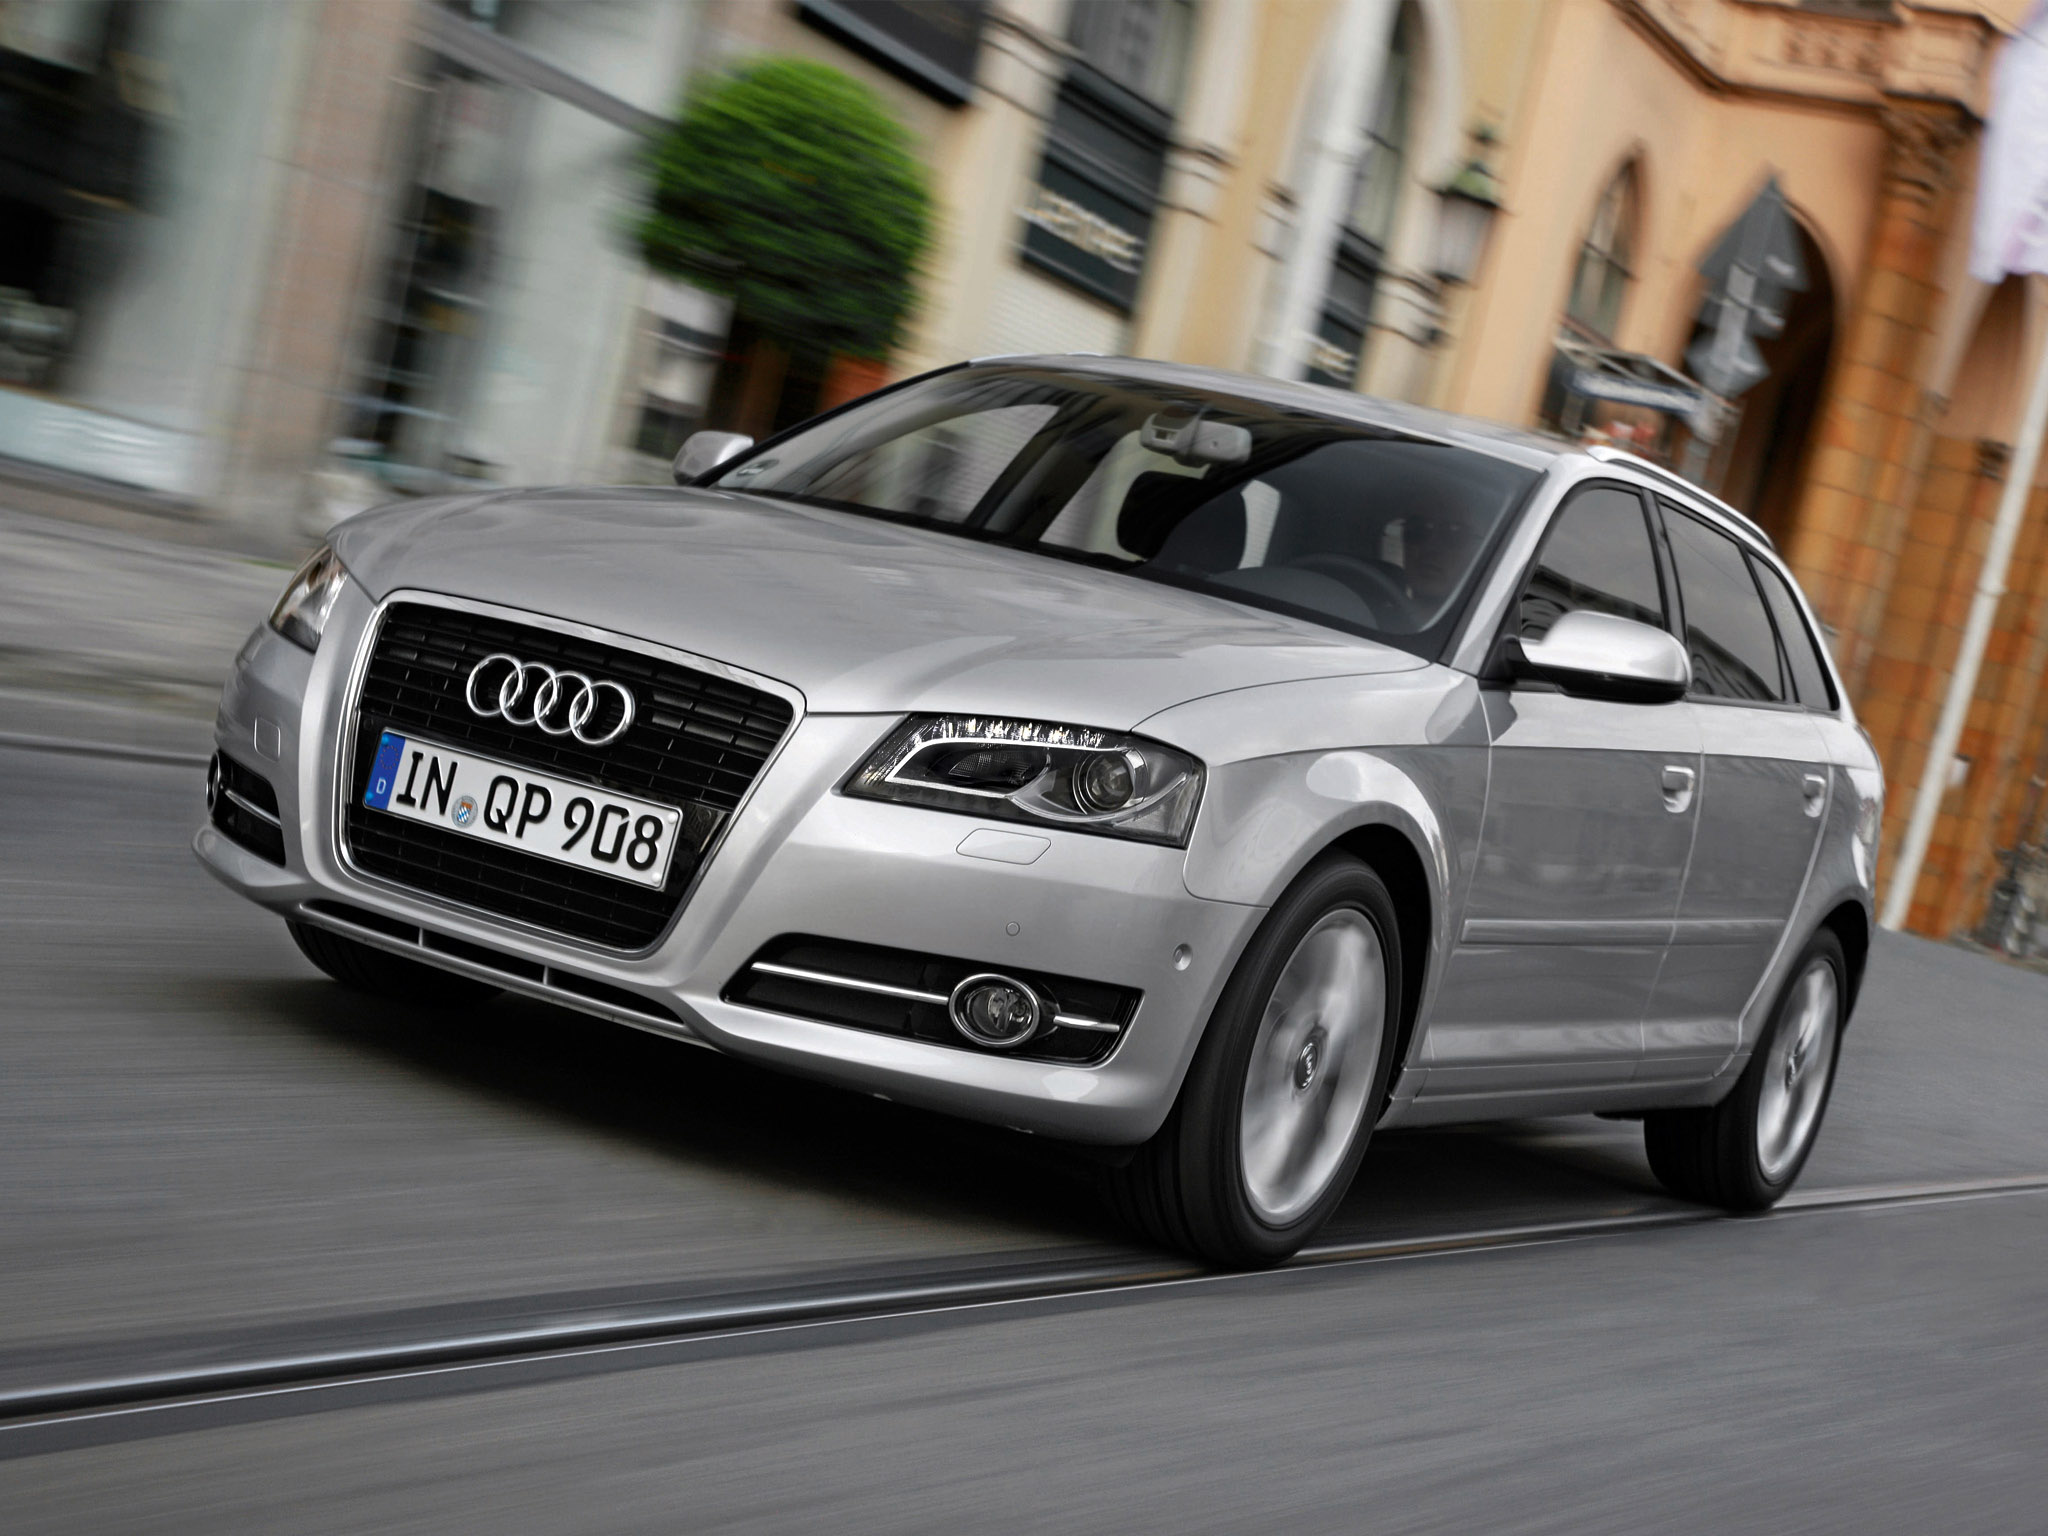 audi a3 sportback 8pa 2010 audi a3 sportback 8pa 2010 photo 07 car in pictures car photo gallery. Black Bedroom Furniture Sets. Home Design Ideas